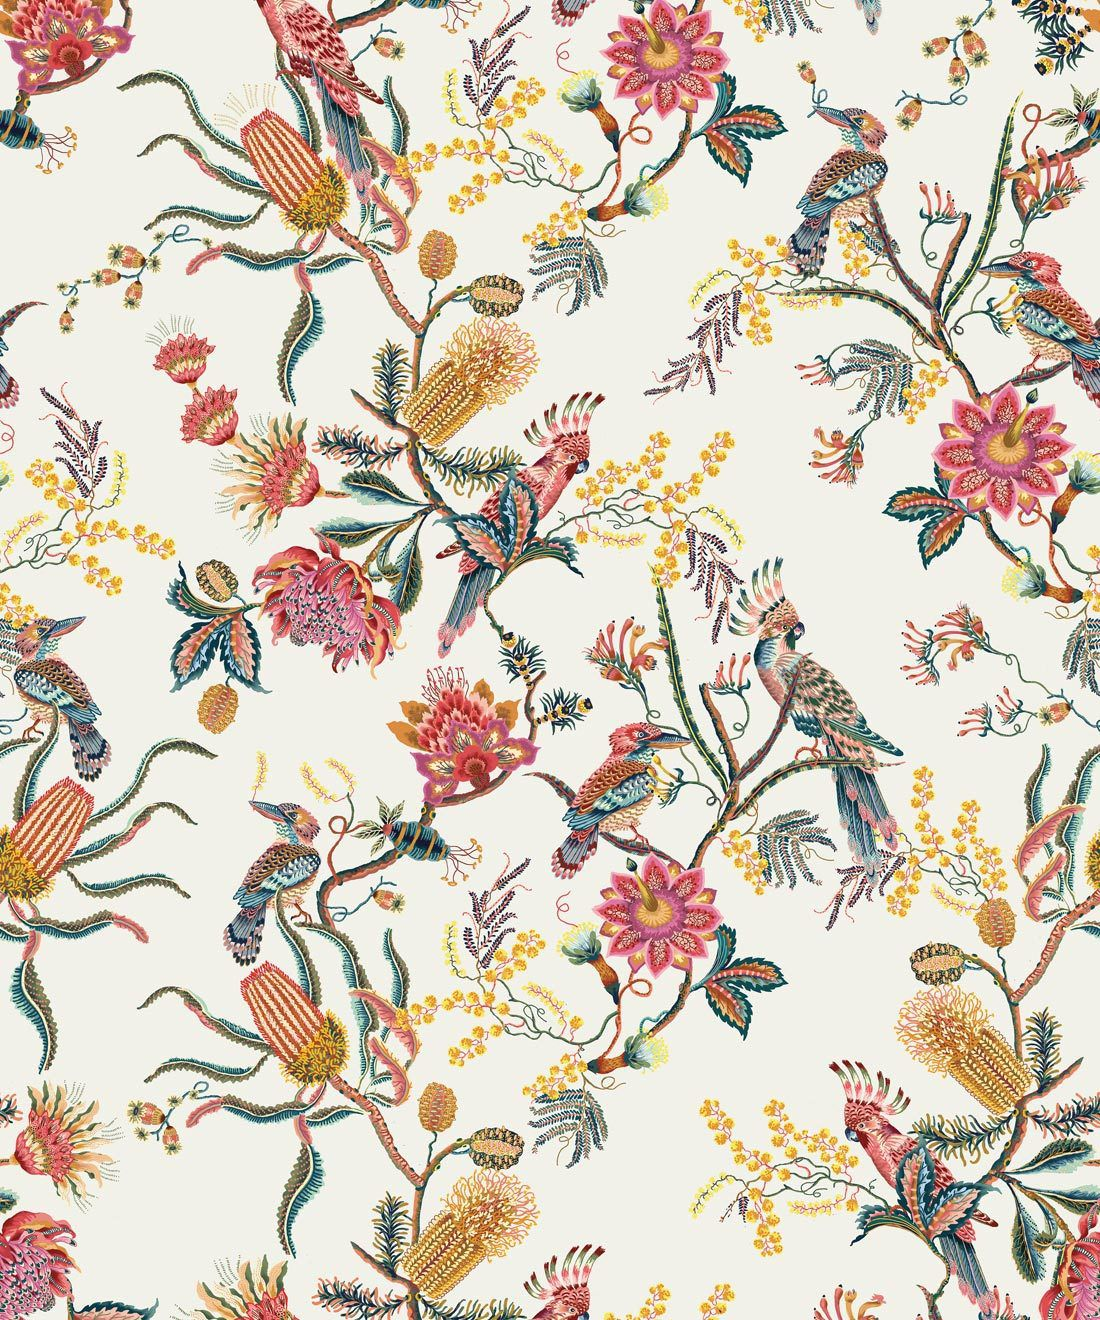 Matilda Wallpaper • Cockatoo, kookaburra • Australian Wallpaper • Milton & King USA • Oceania Swatch